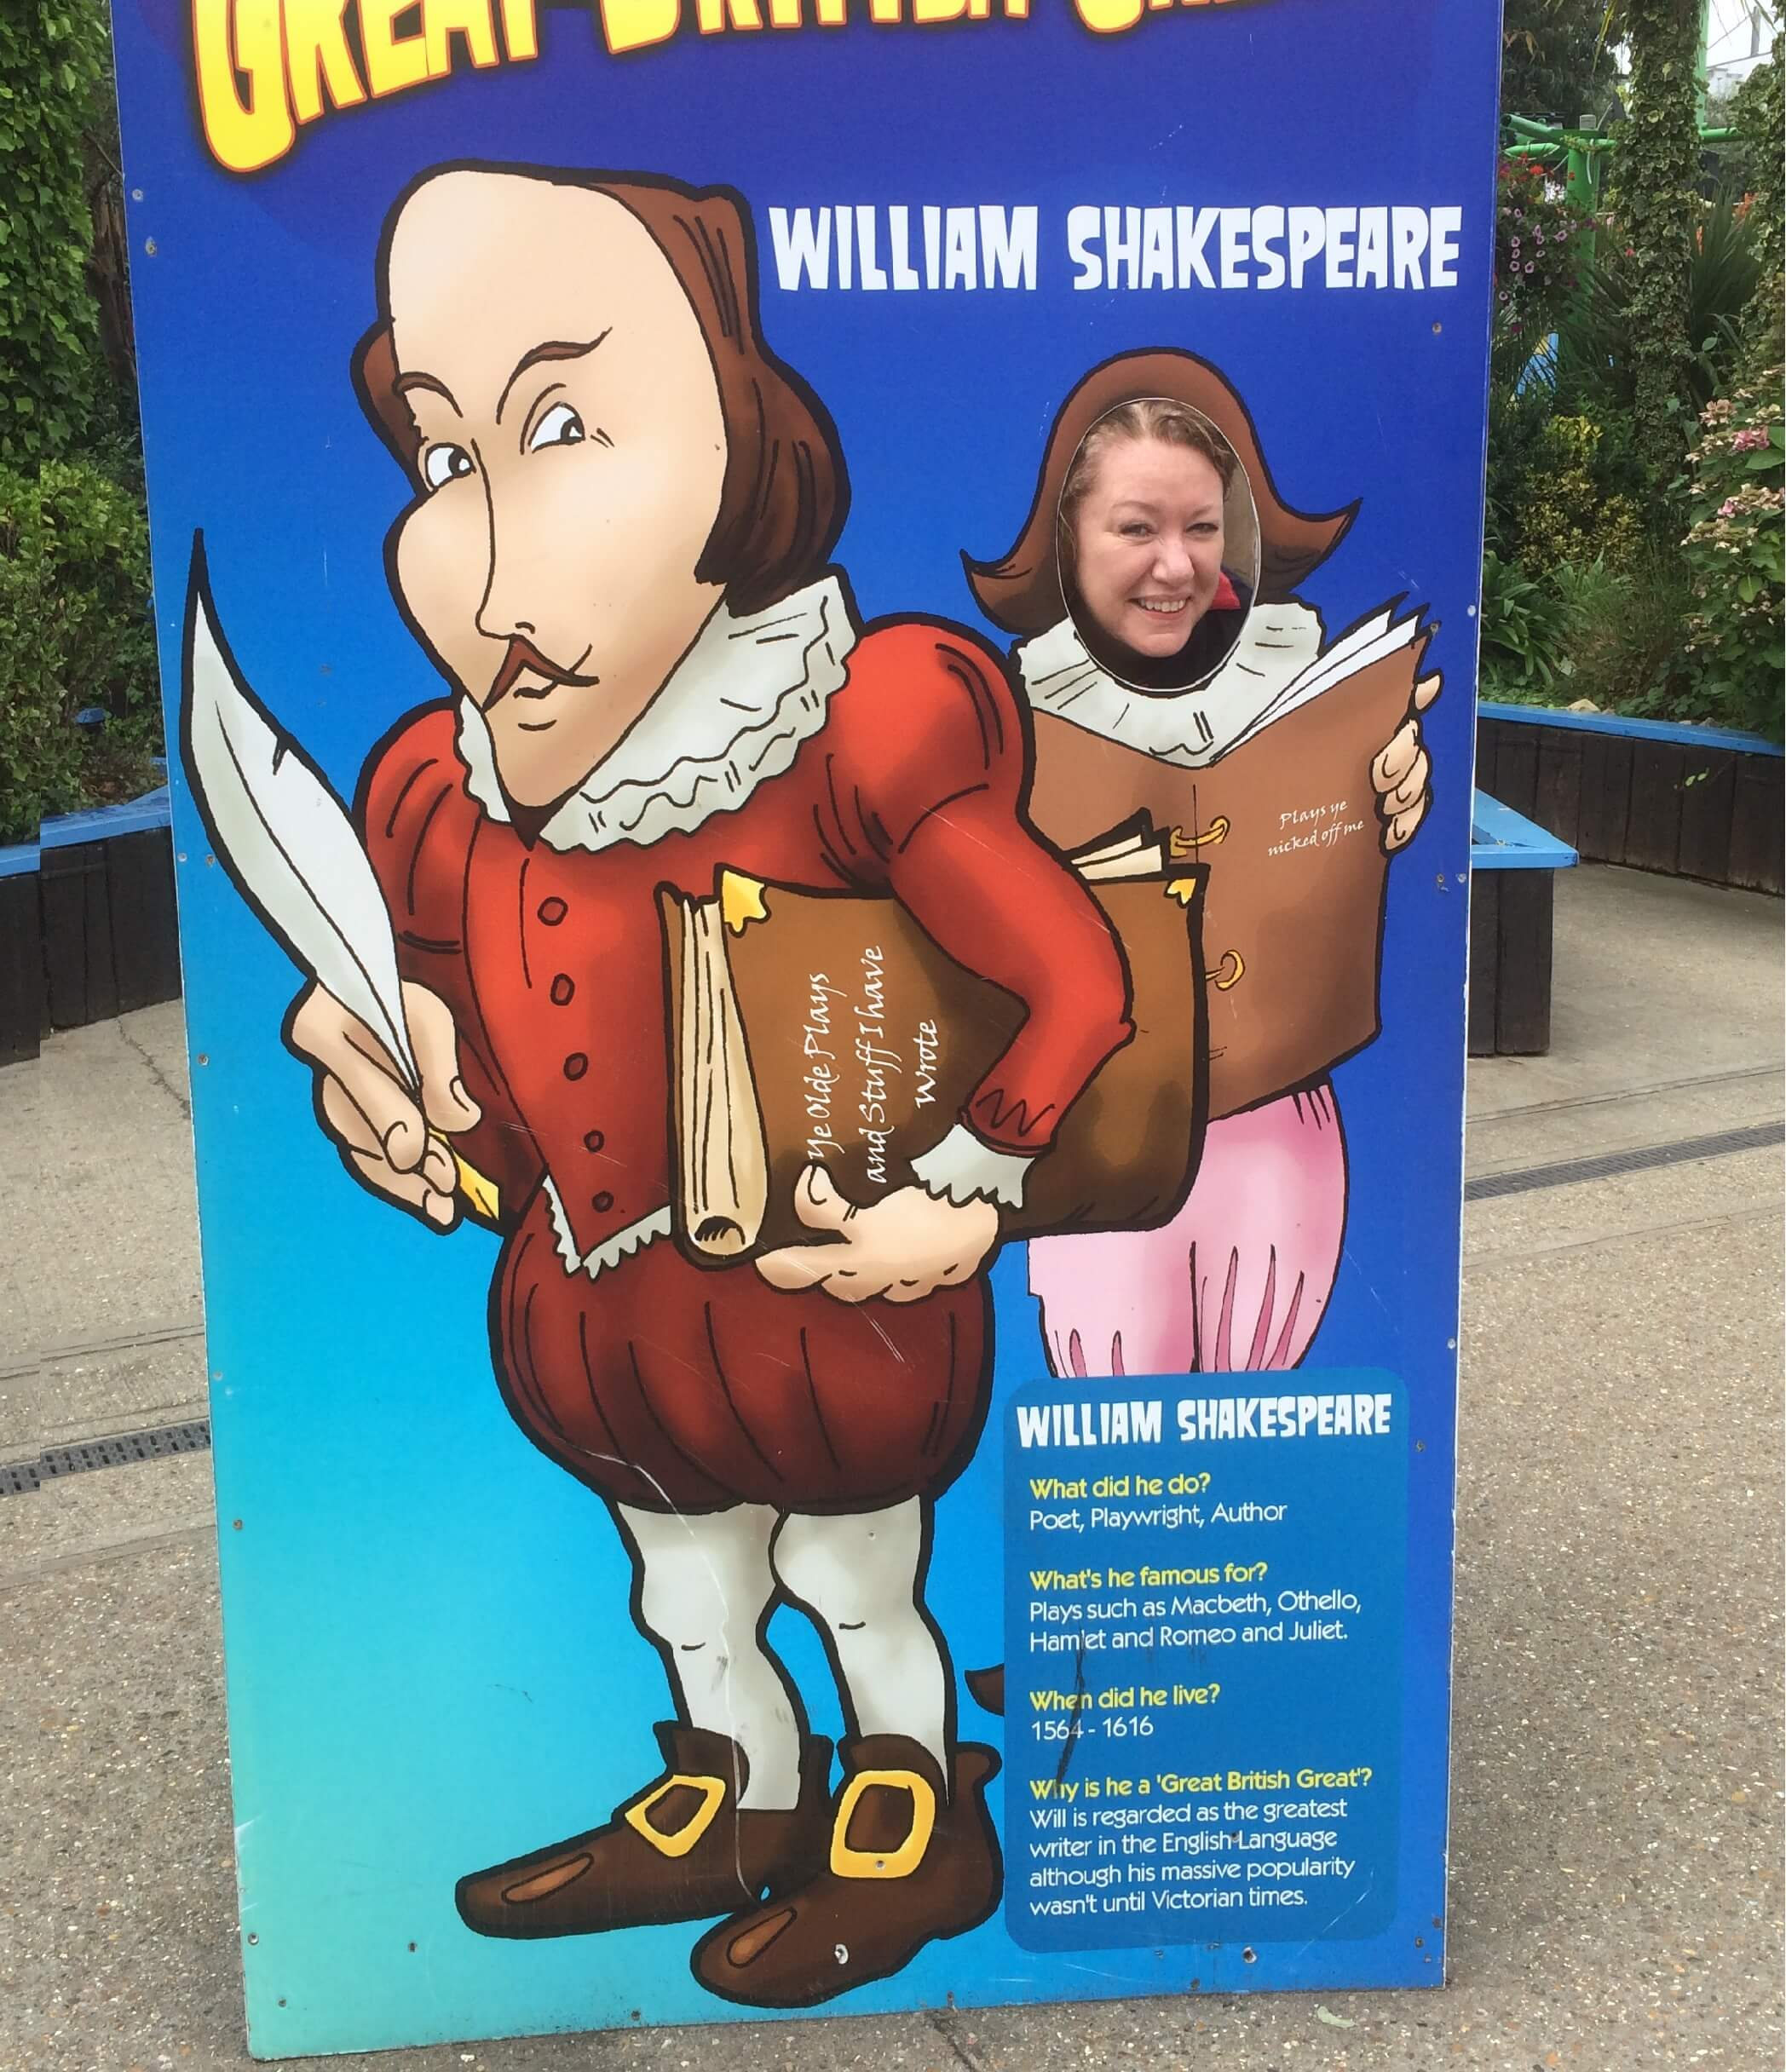 Nexus staff member, Karina, posing as William Shakespeare